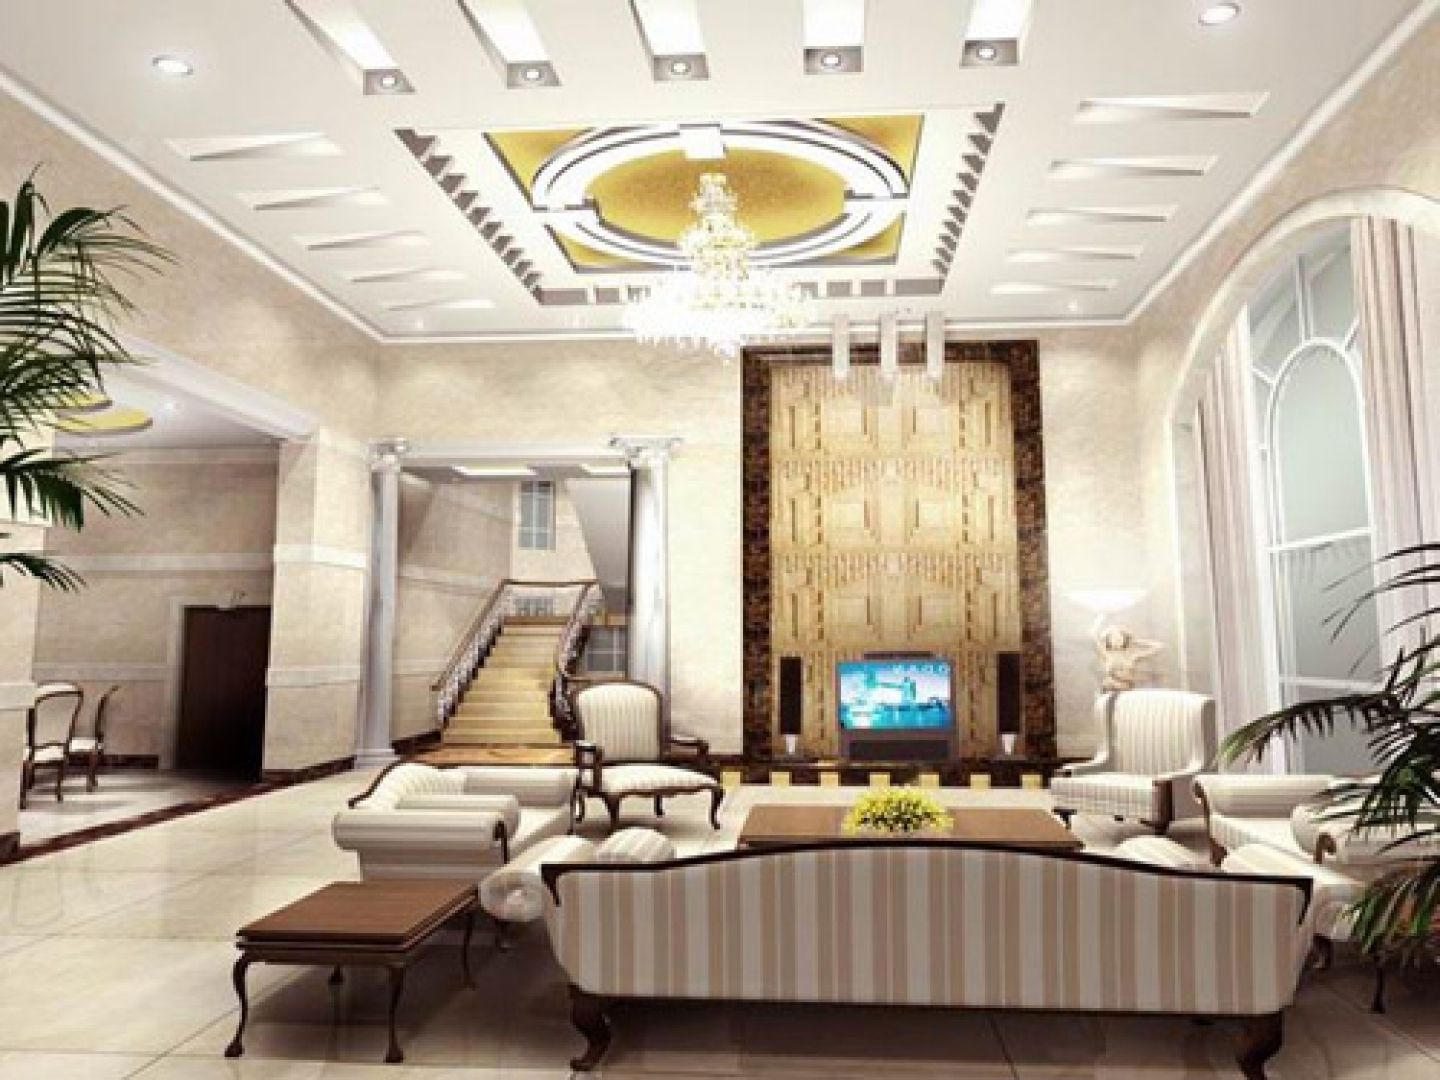 Ceiling designs for your living room ceilings living for Room roof design images